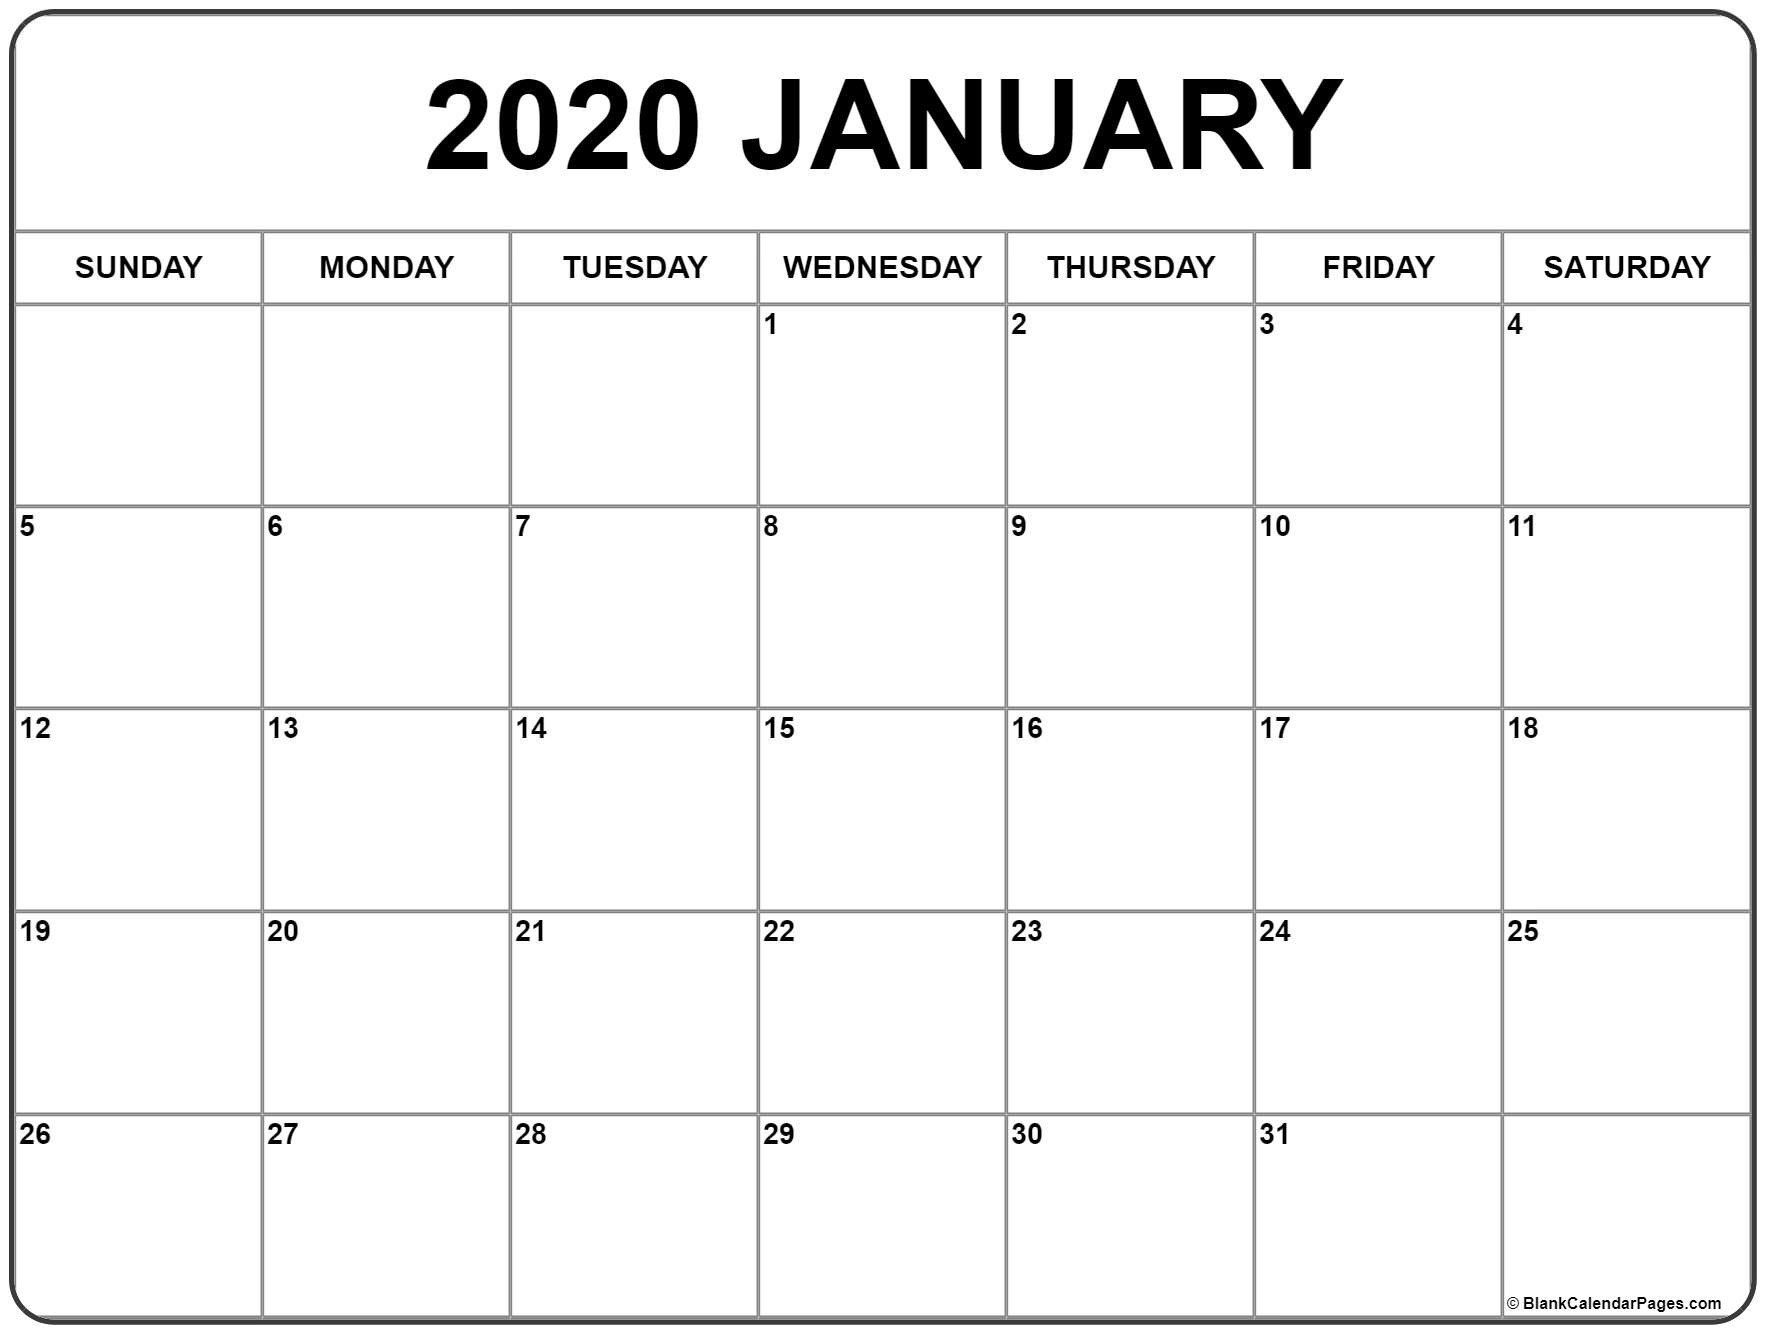 January 2020 Calendar | Free Printable Monthly Calendars  Print Free Calendars Without Downloading